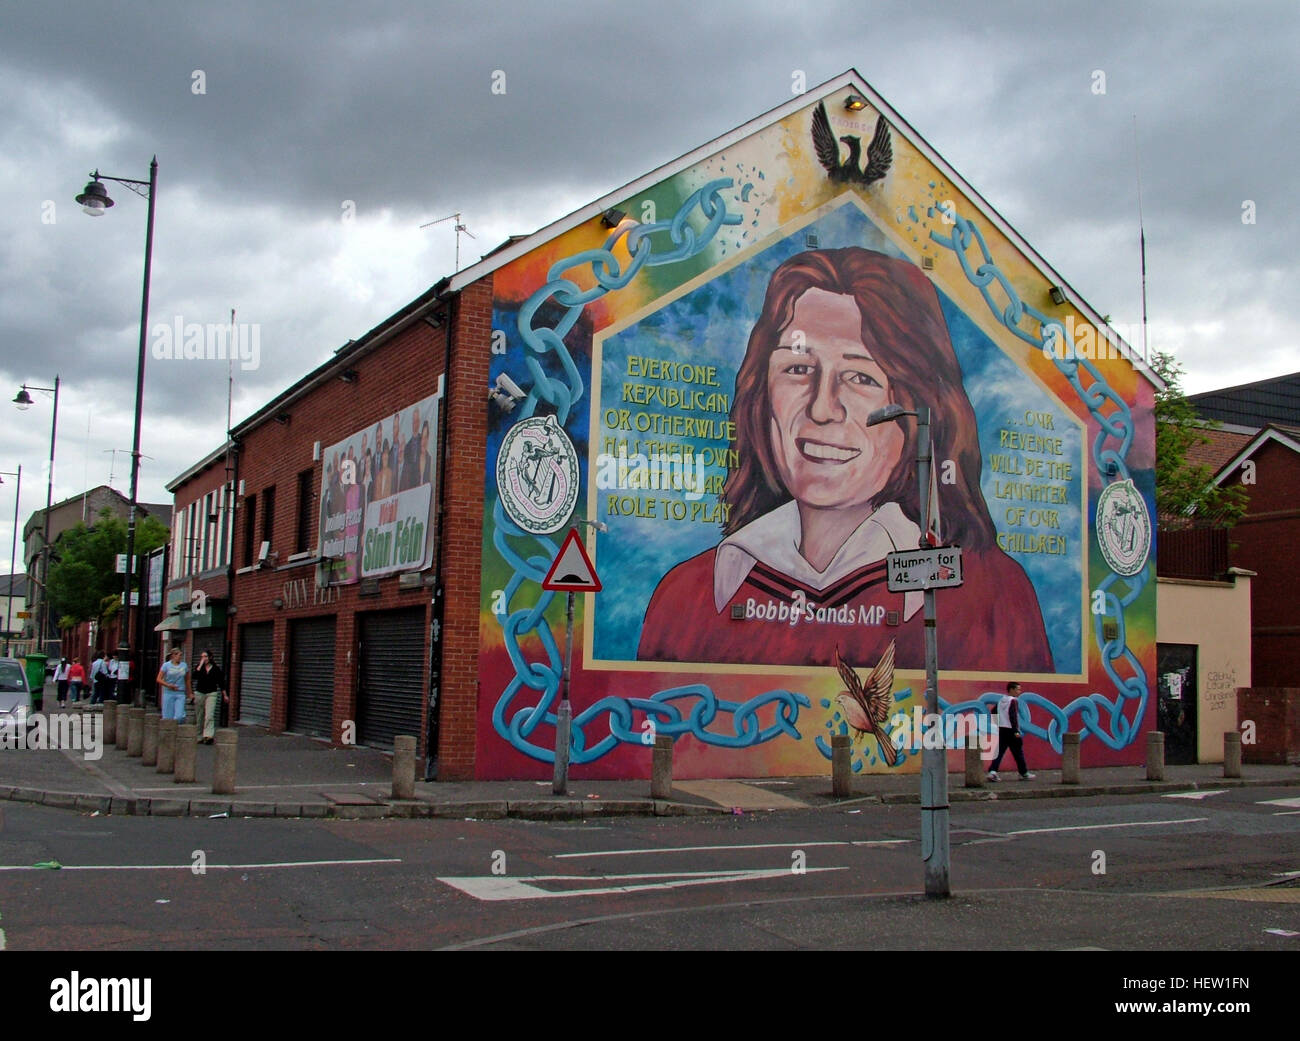 Road,painting,graffiti,resistance,IRA,peace,Northern Ireland,NI,UK,St,street,Eire,Irish,Republic,Irish Republic,conflict,Irish Republican Army,Political Change,Bobby,Sands,MP,IRA,Sinn Fein,Office,dark skies,dark sky,over West Belfast,Hblock,H-Block,GoTonySmith,@HotpixUK,Tony,Smith,UK,GB,Great,Britain,United,Kingdom,Irish,British,Ireland,problem,with,problem with,issue with,NI,Northern,Northern Ireland,Belfast,City,Centre,Art,Artists,the,troubles,The Troubles,Good Friday Agreement,Peace,honour,painting,wall,walls,tribute,republicanism,Fight,Justice,West,Beal,feirste,martyrs,social,tour,tourism,tourists,urban,six,counties,6,backdrop,county,Antrim,occupation,good,Friday,agreement,peace,reconciliation,IRA,terror,terrorists,genocide,catholic,community,catholics,Buy Pictures of,Buy Images Of,Images of,Stock Images,Tony Smith,United Kingdom,Great Britain,British Isles,republican cause,Belfast Catholic Community